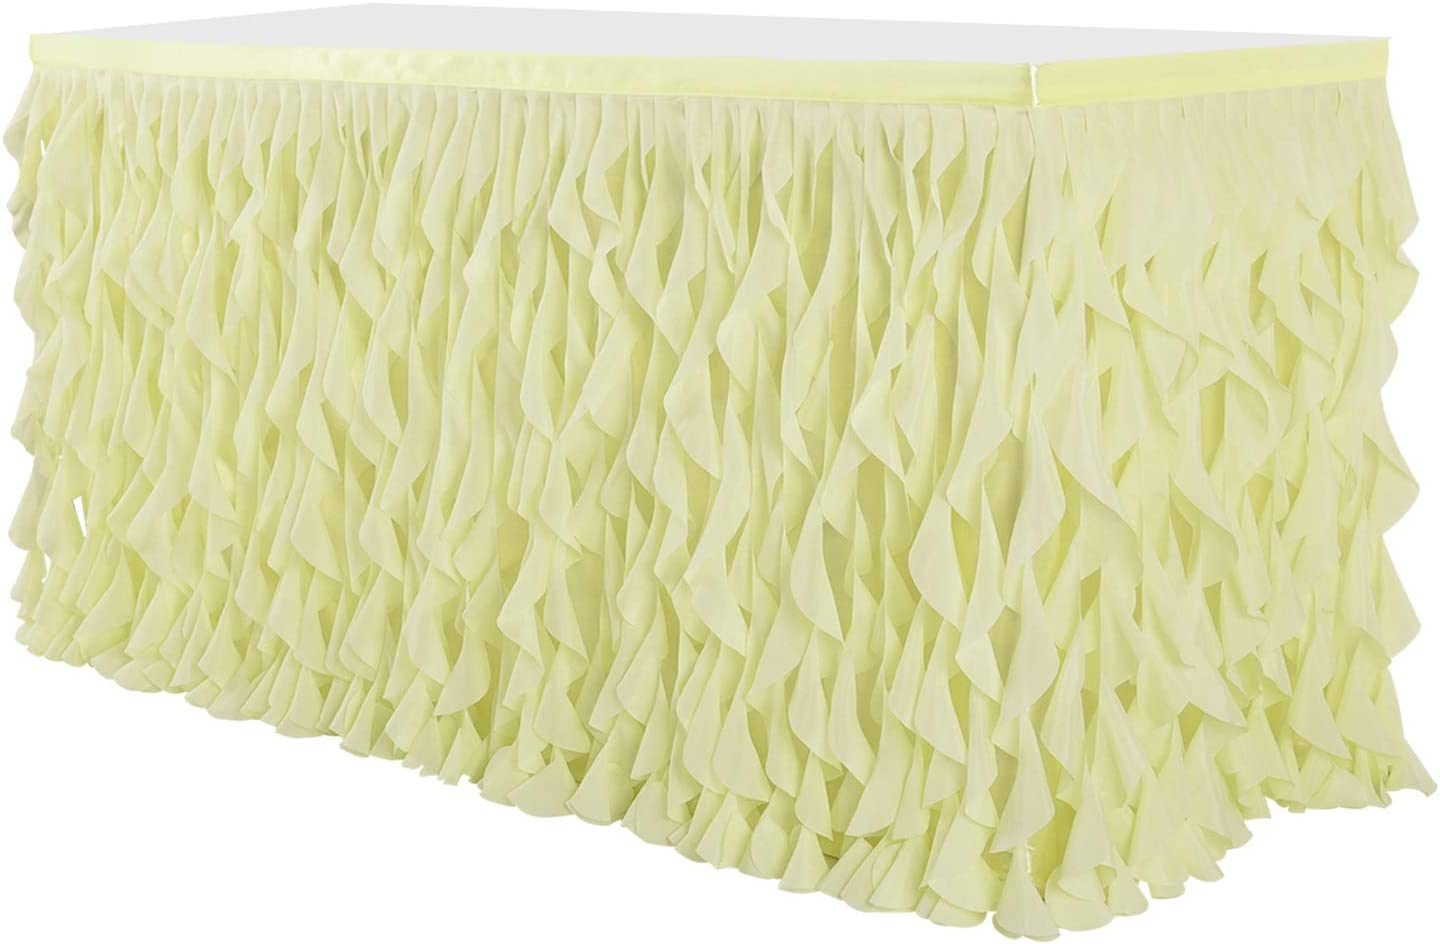 Leegleri Yellow Curly Willow Tulle Tutu Table Skirt for Rectangle or Round Table,Ruffle Table Skirts for Mermaid Party Baby Shower Decoration(6 ft table skirt)